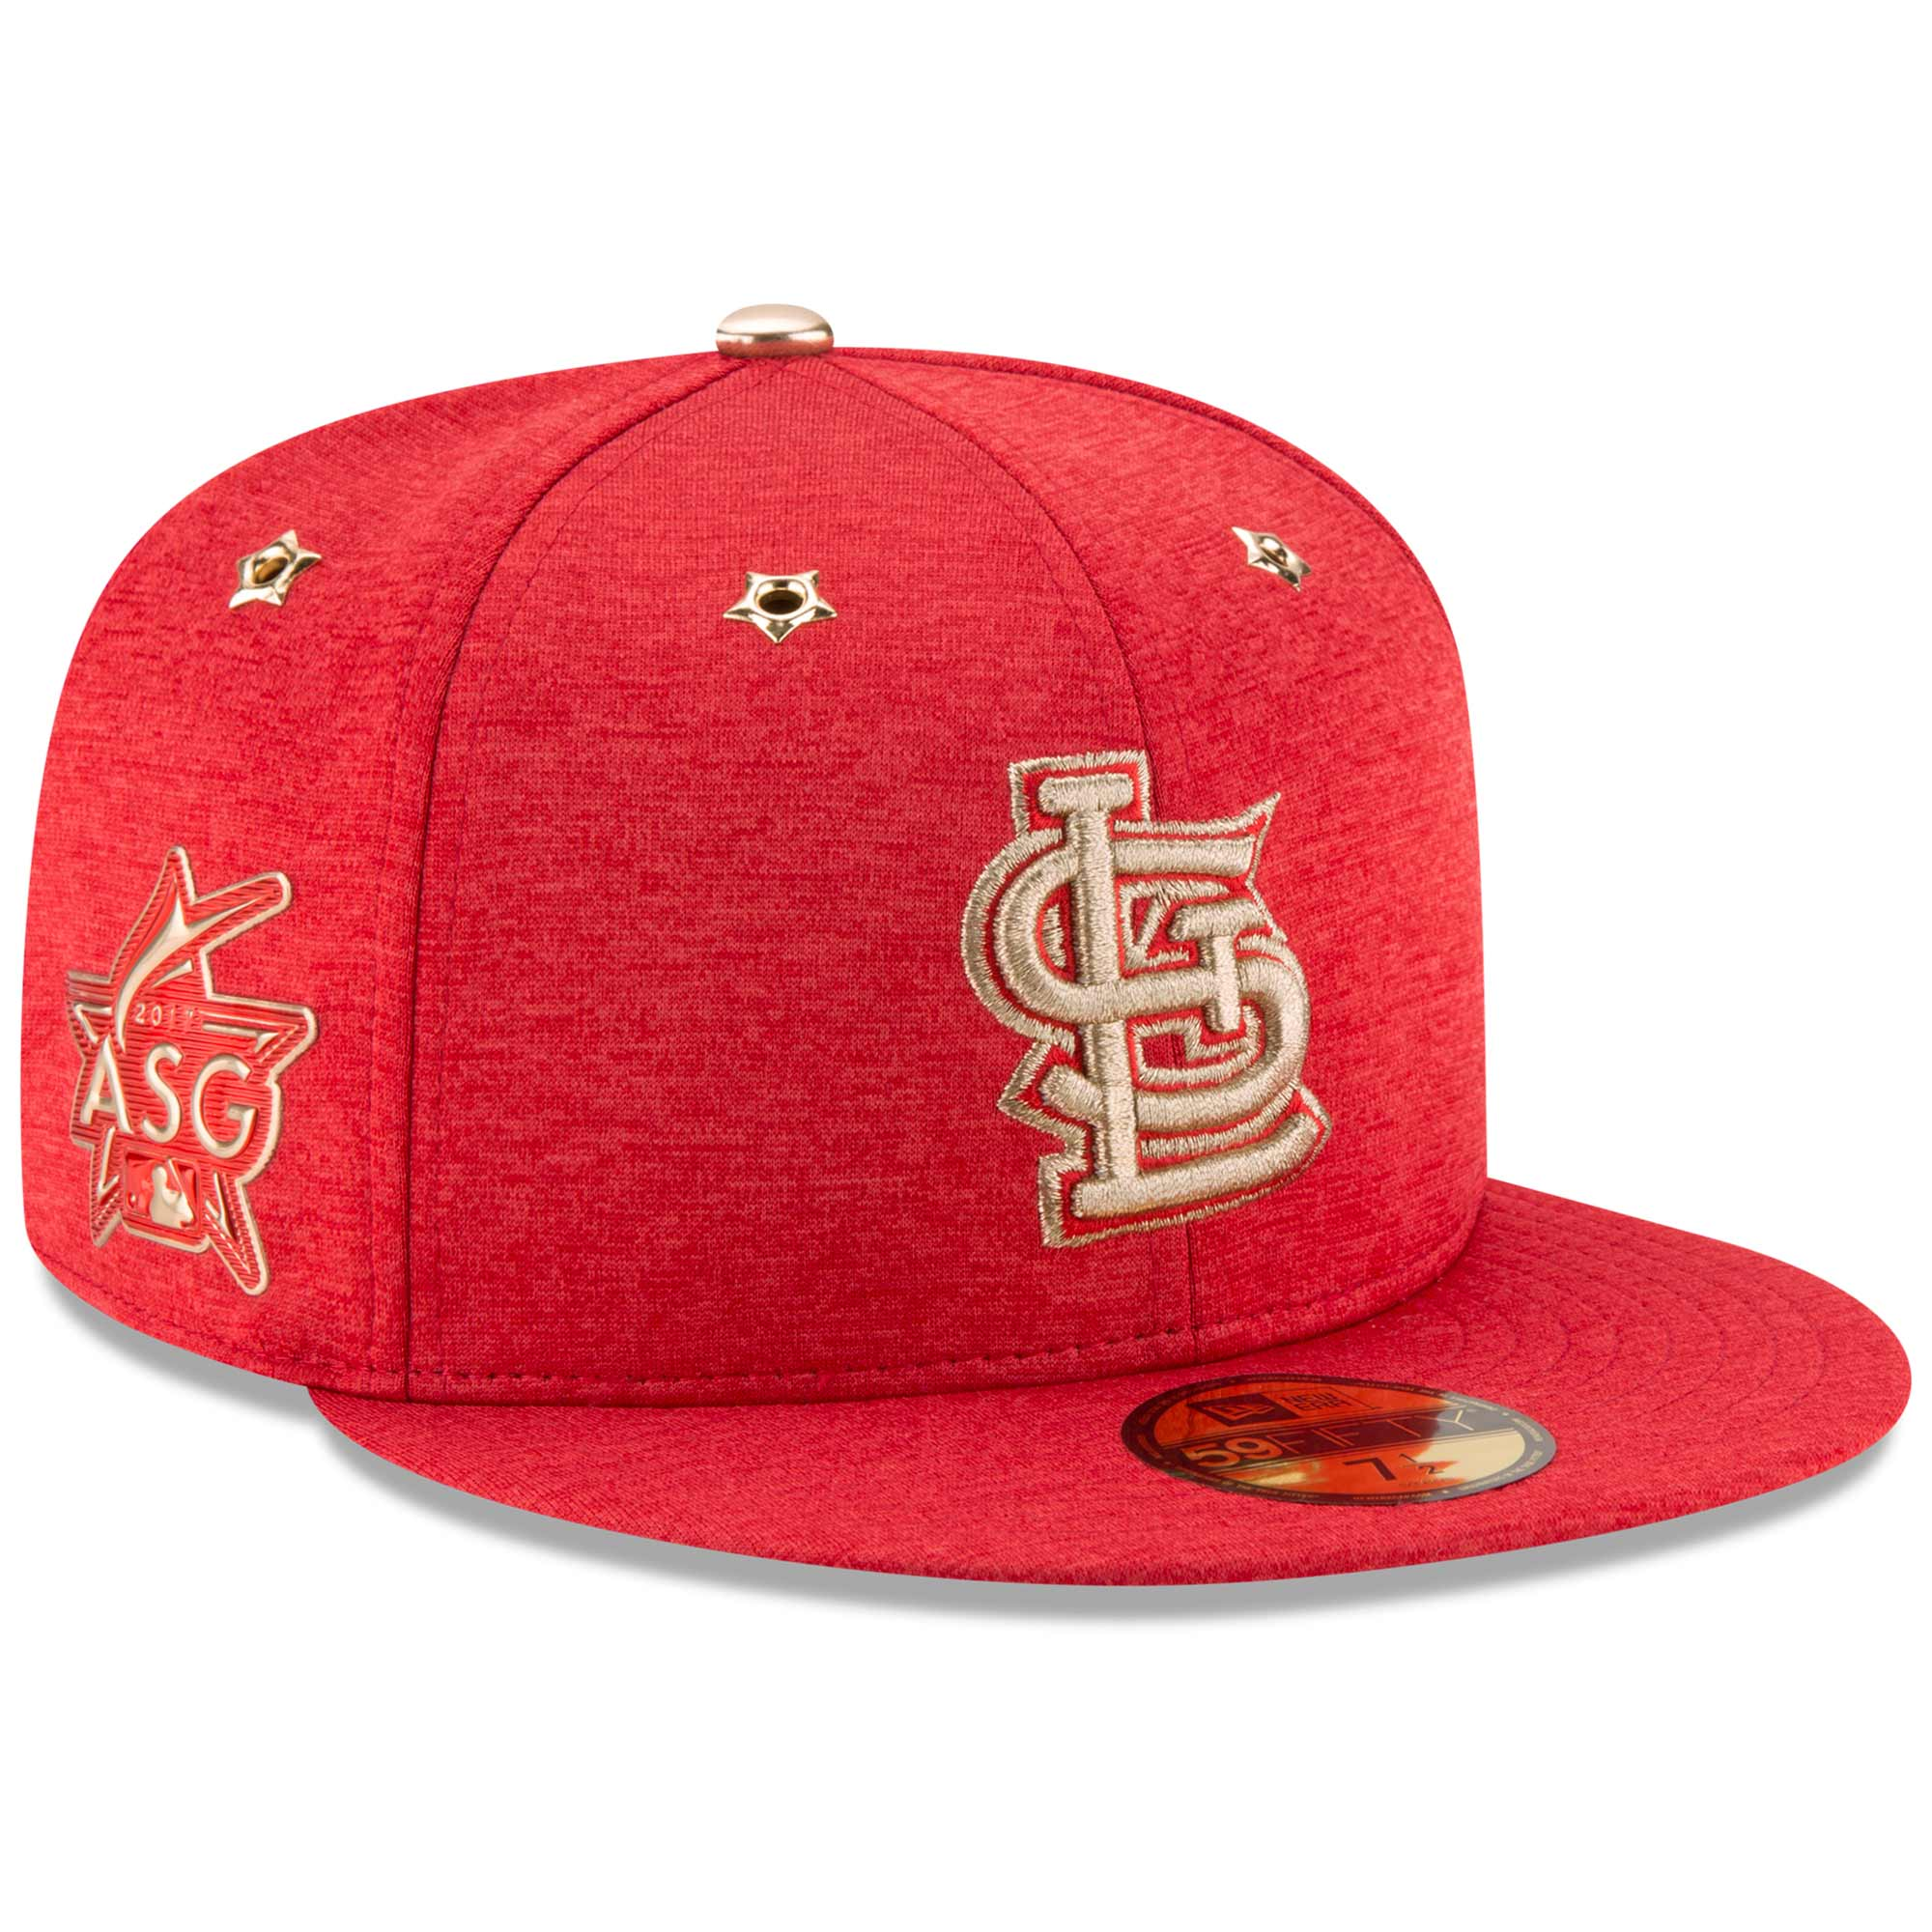 e8de89c30b48a6 ... low profile 59fifty cap acb7c 3bbe2; discount code for st. louis  cardinals new era 2017 mlb all star game side patch